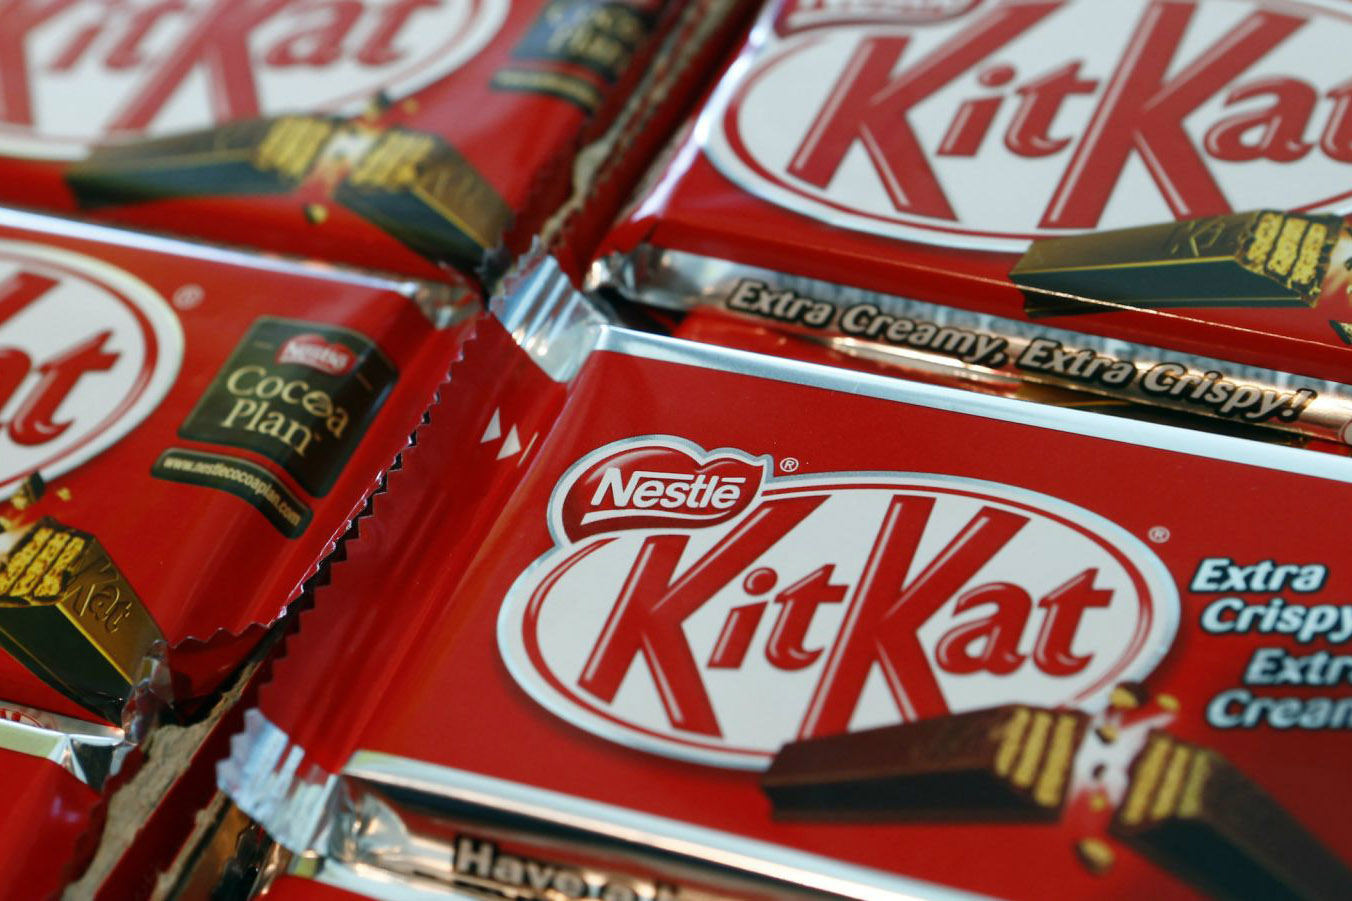 Start stashing Kit Kats kids, Nestle are cutting 40% of the sugar in their chocolate